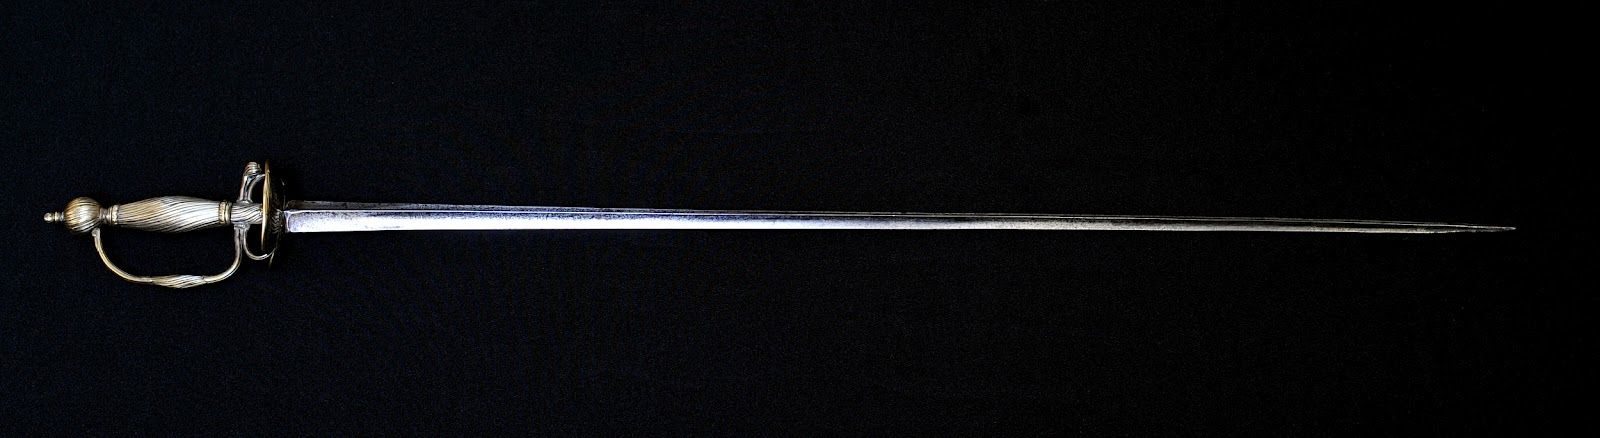 Triple edged blade with a triangular cross section 82 cm long and 2 5